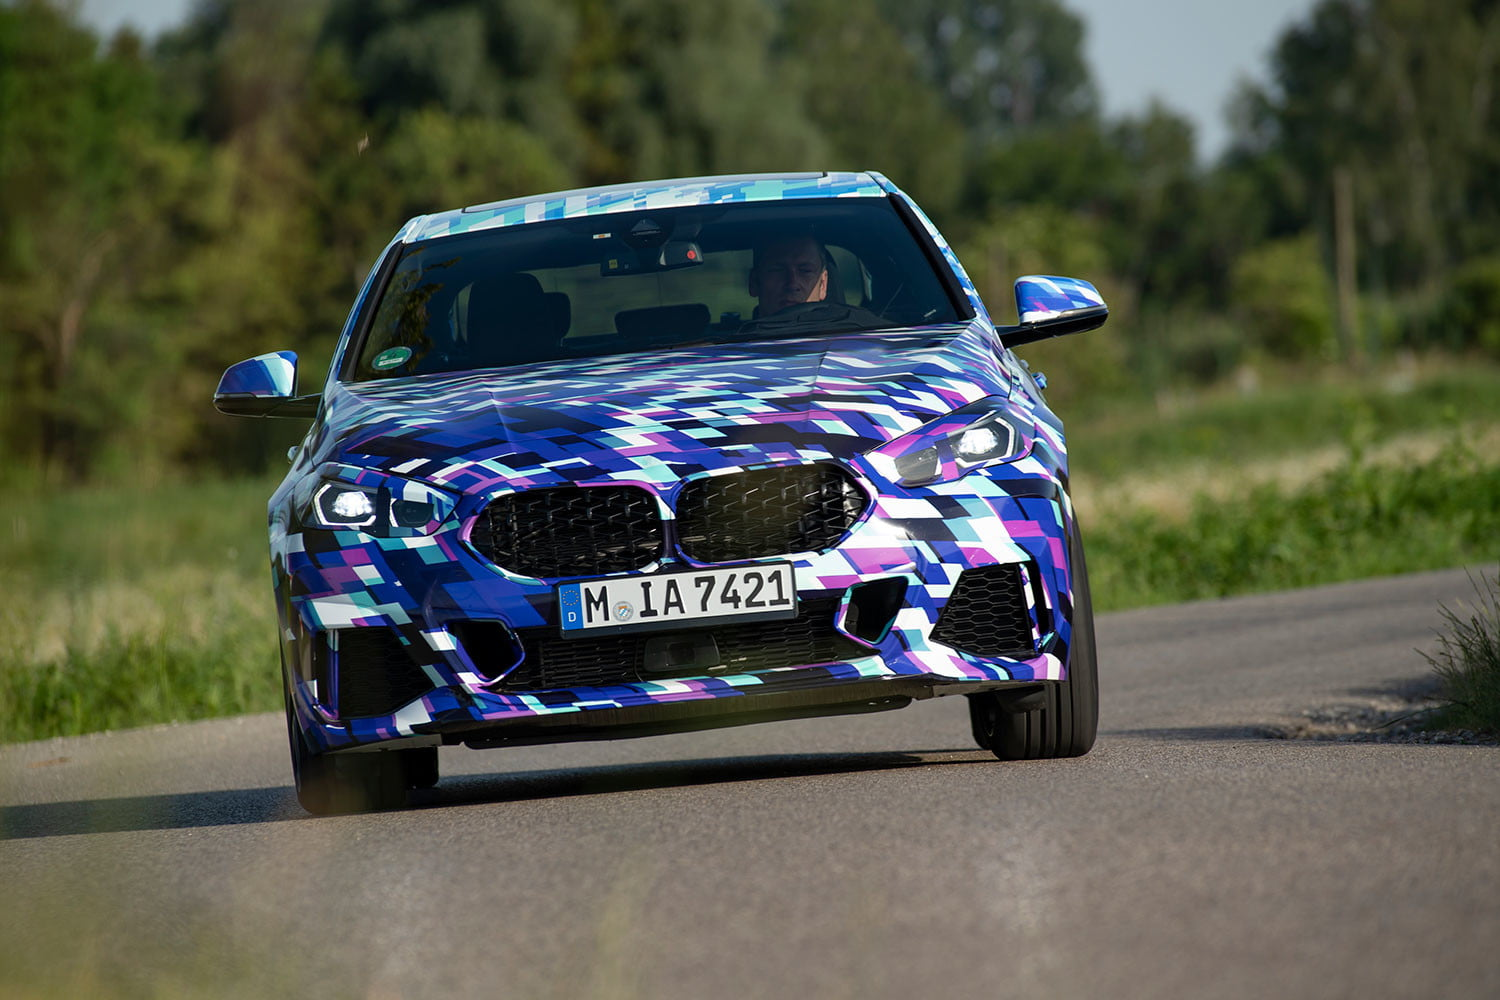 2020 BMW 2 Series Gran Coupe Entry-Level Luxury Sedan Review